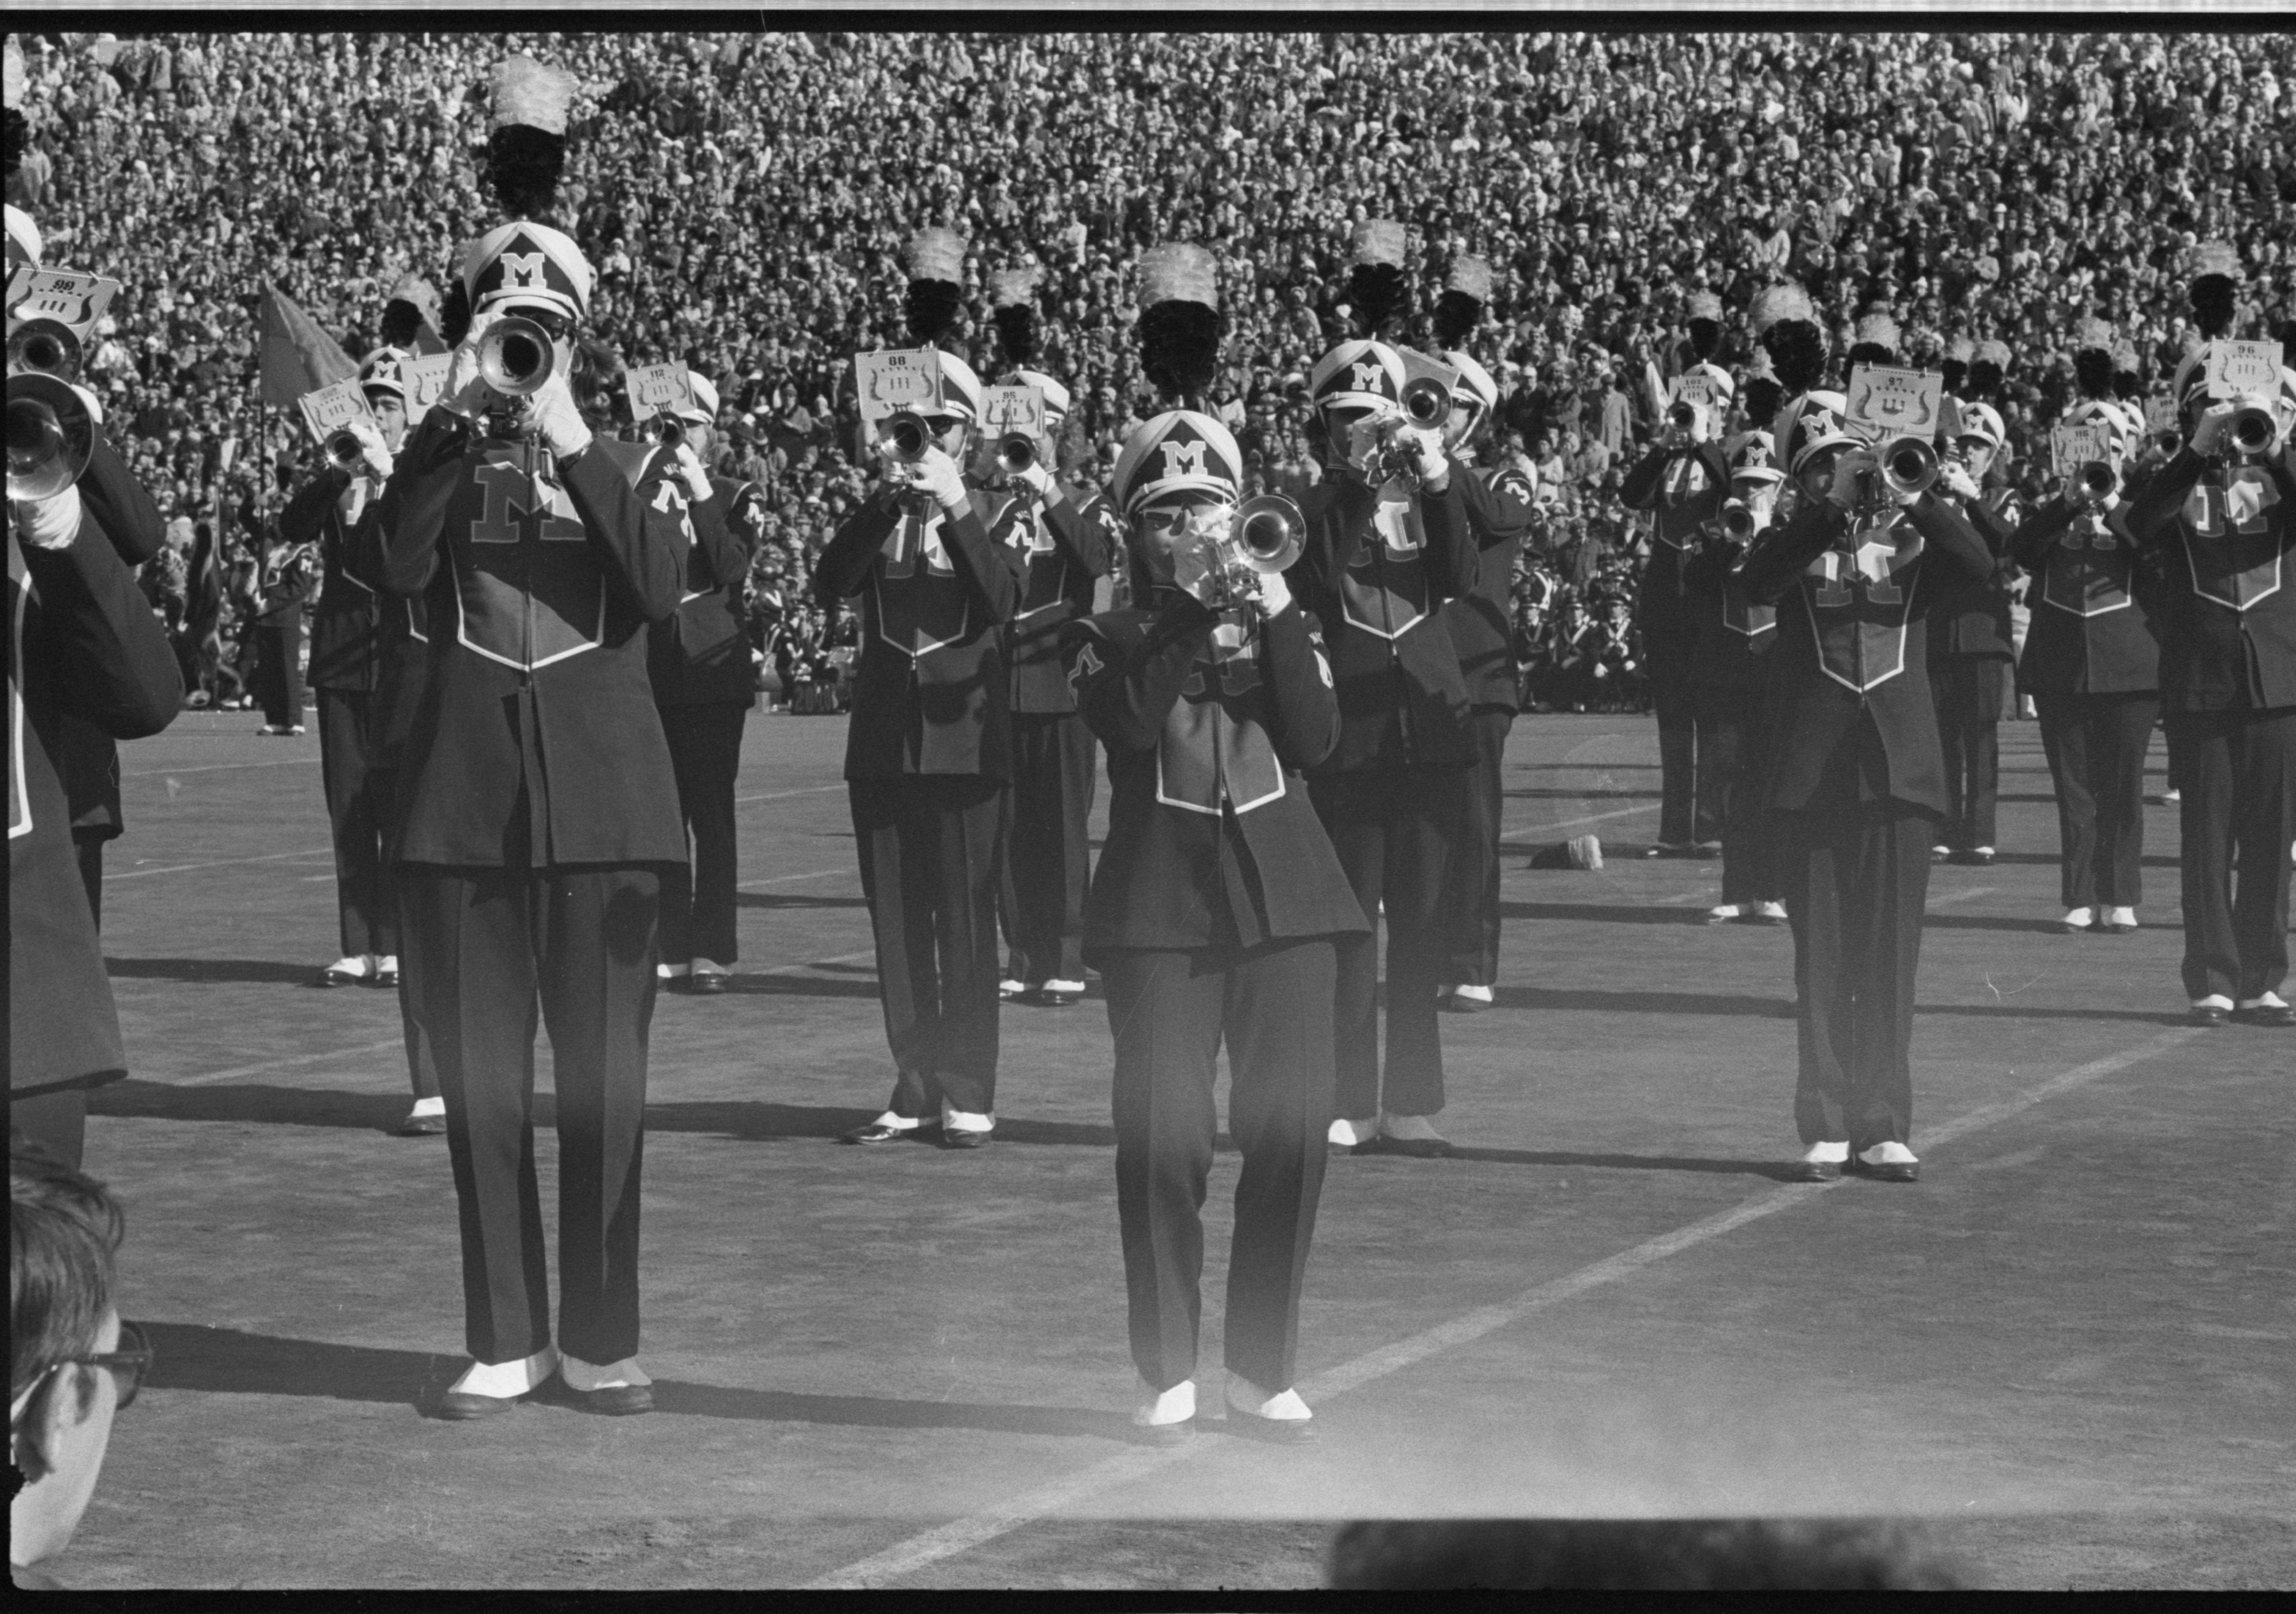 Michigan Marching Band Honors Bob Ufer at Michigan - Ohio State Game, November 1975 image